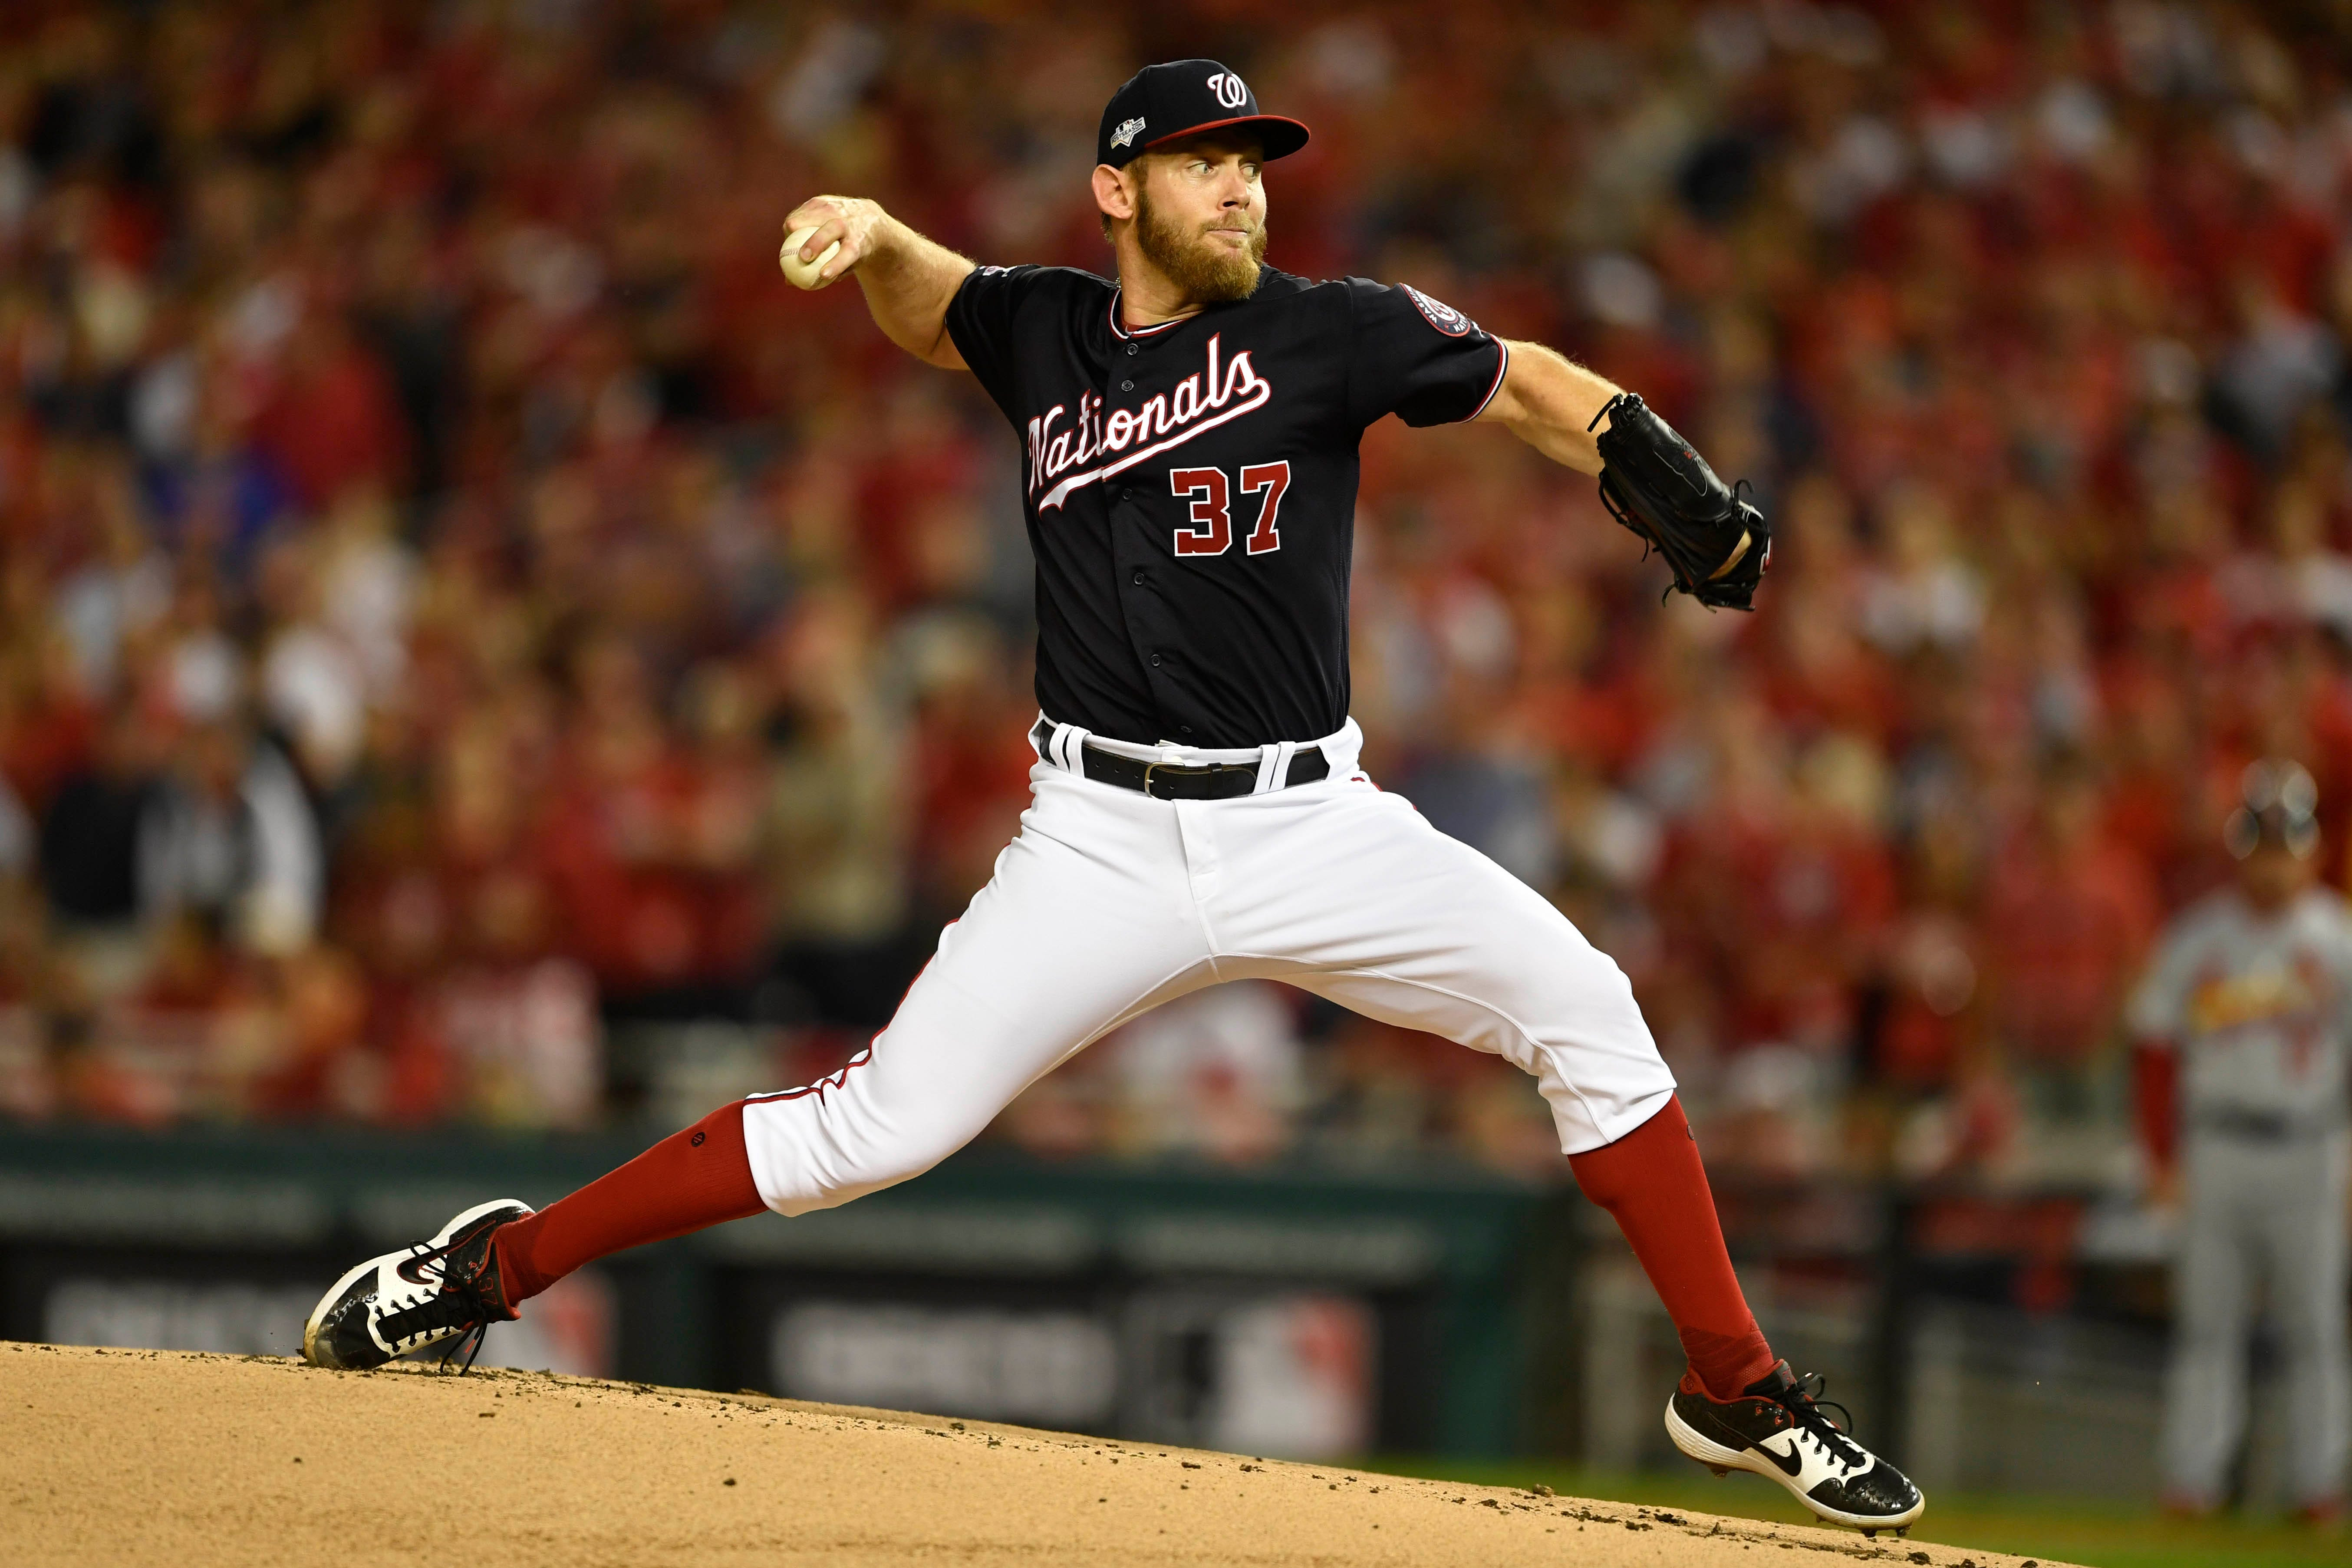 Stephen Strasburg puts Nationals on brink of World Series with Game 3 win vs. Cardinals